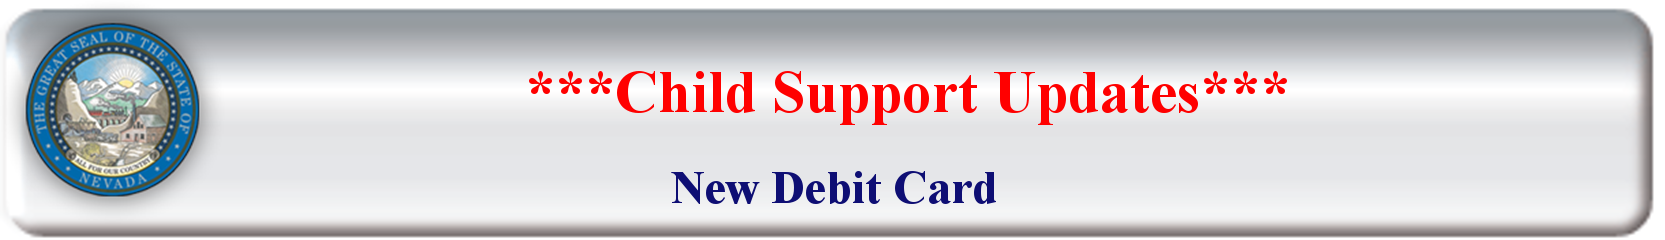 CS_New Debit_Card_2